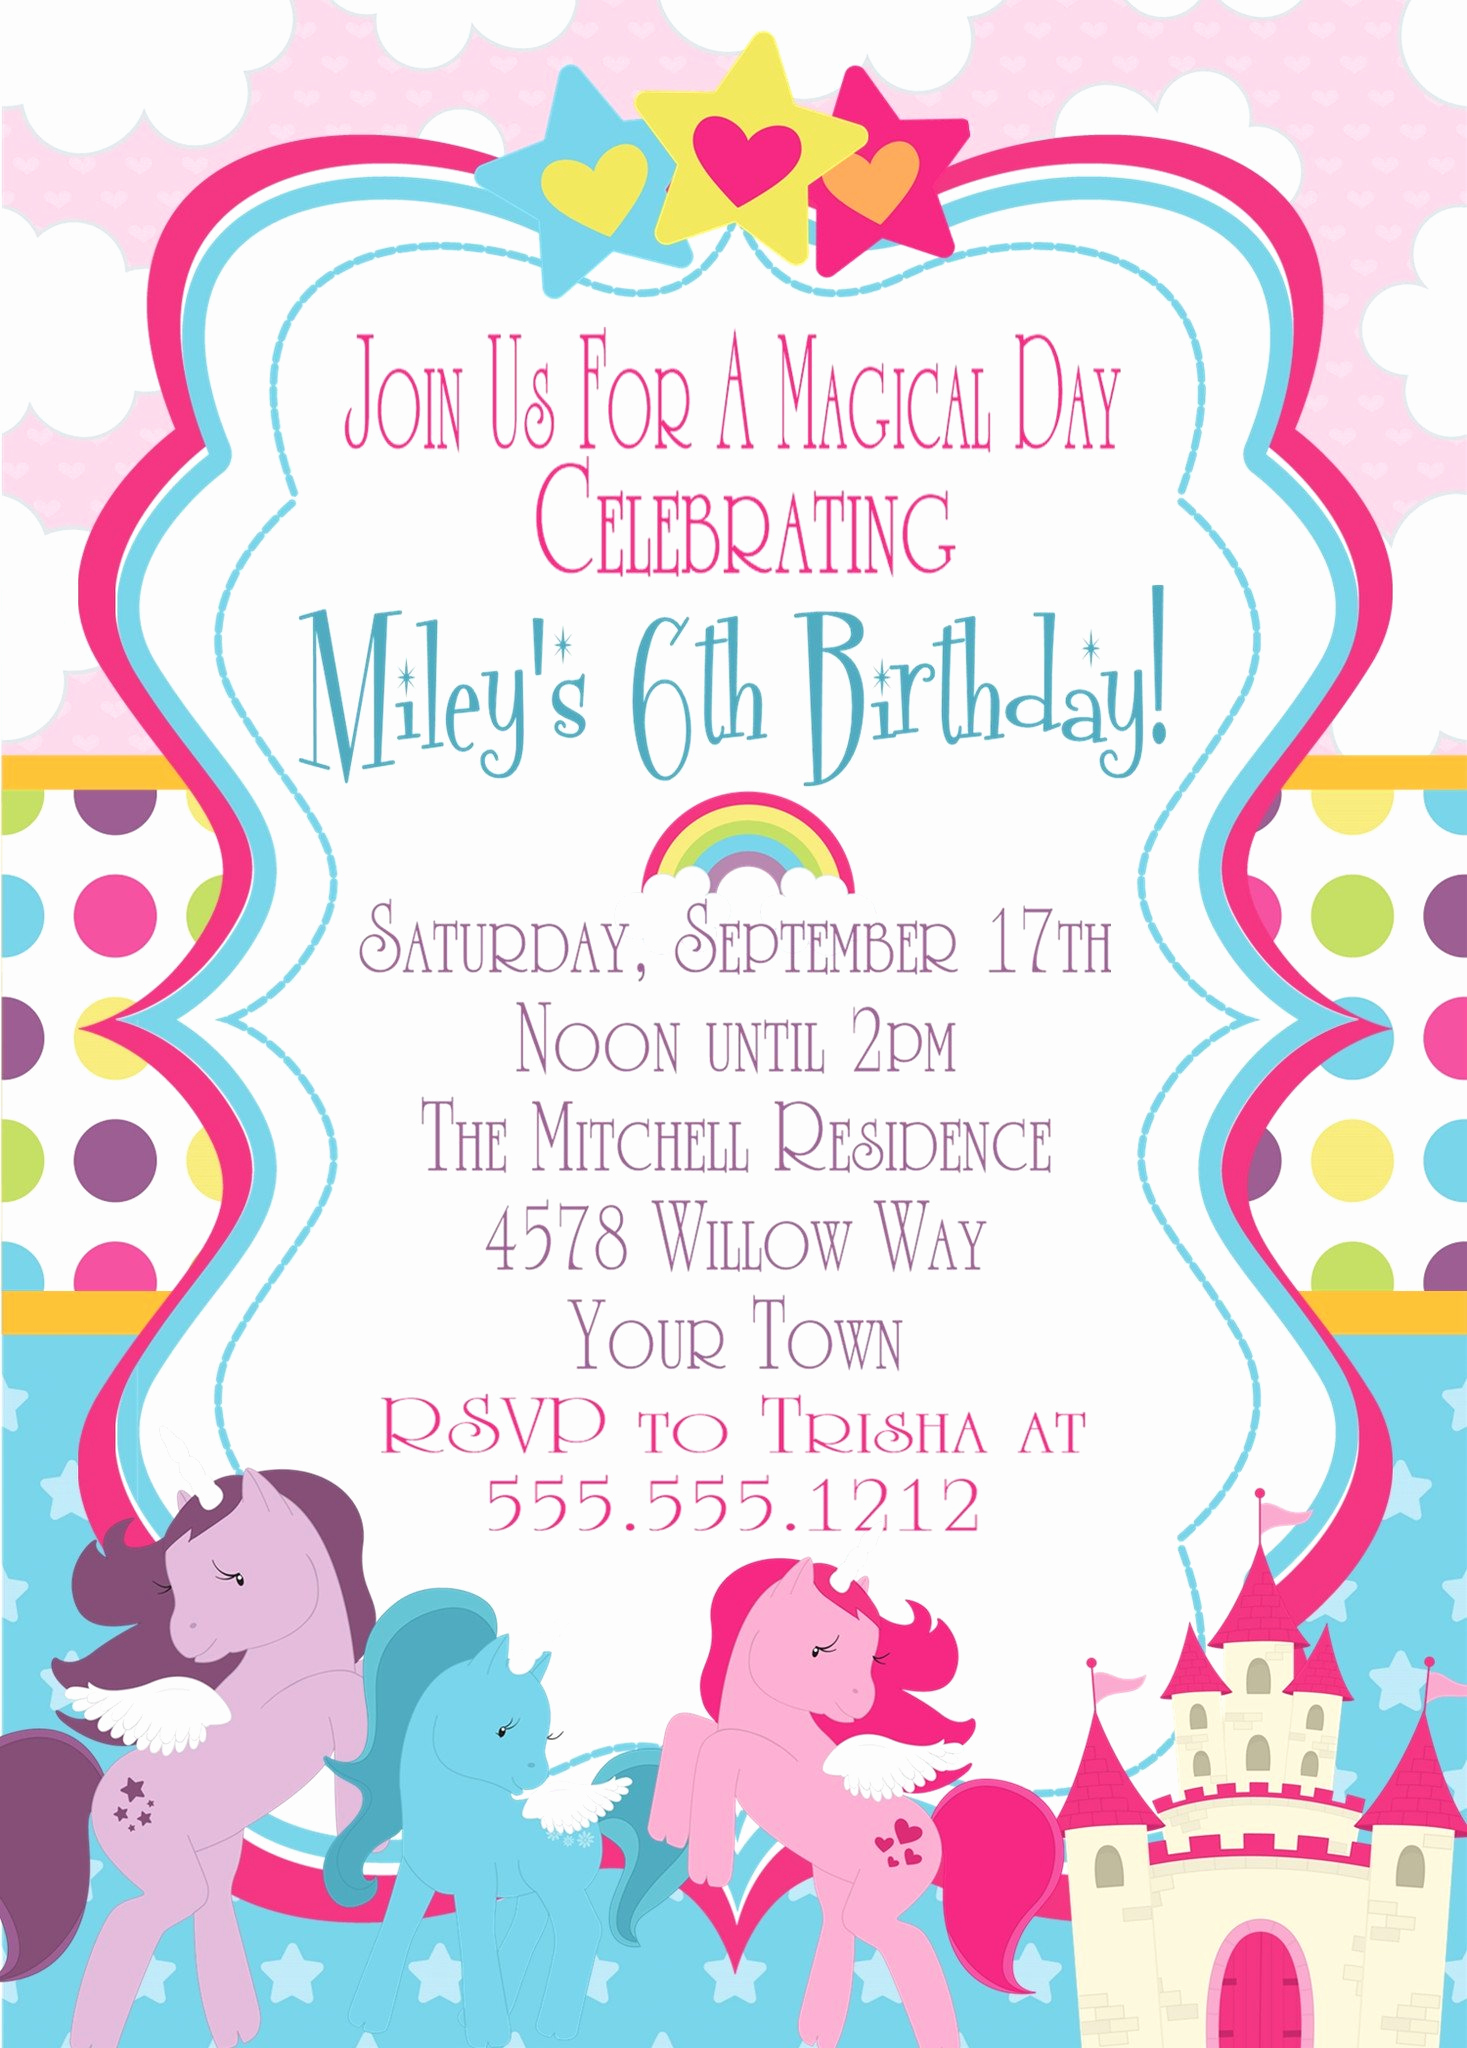 My Little Pony Birthday Invitation Lovely My Little Pony Birthday Party Invitations – Party Beautifully